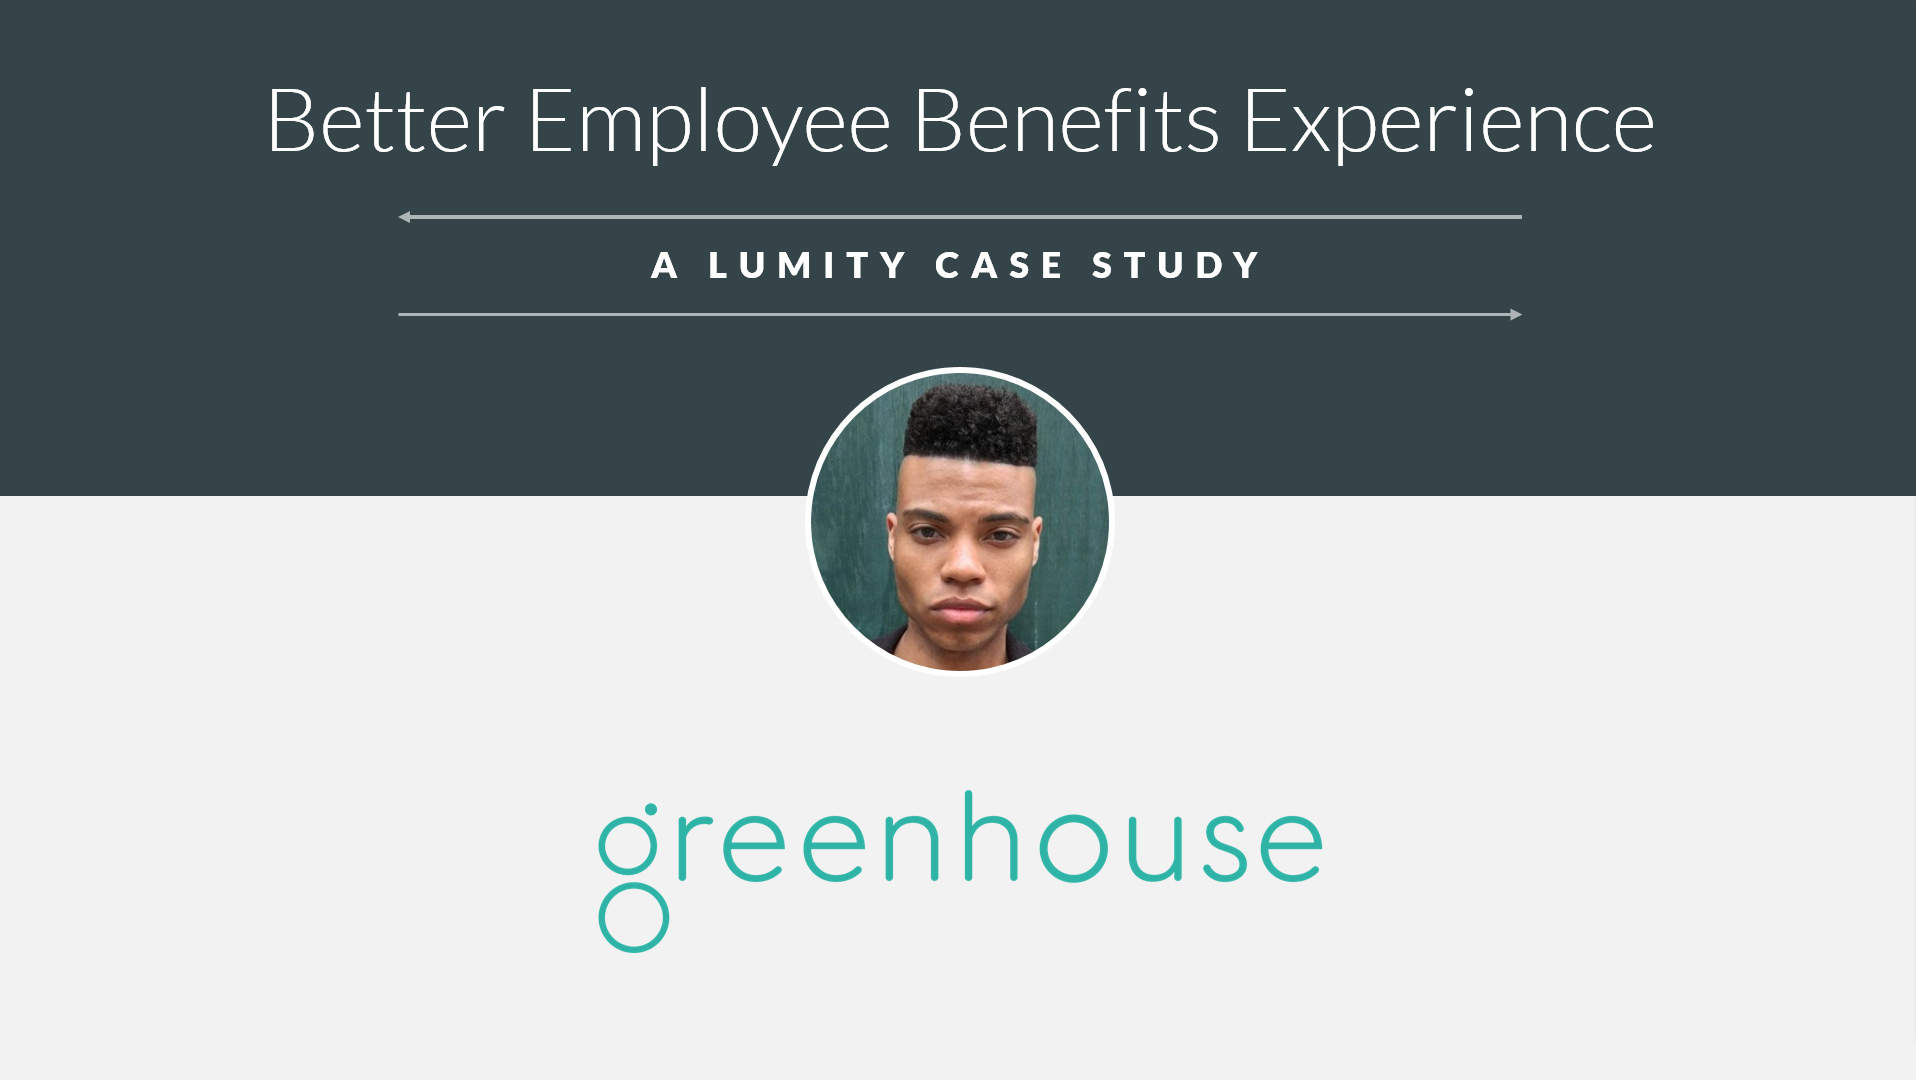 Greenhouse's Better Employee Benefit Experience